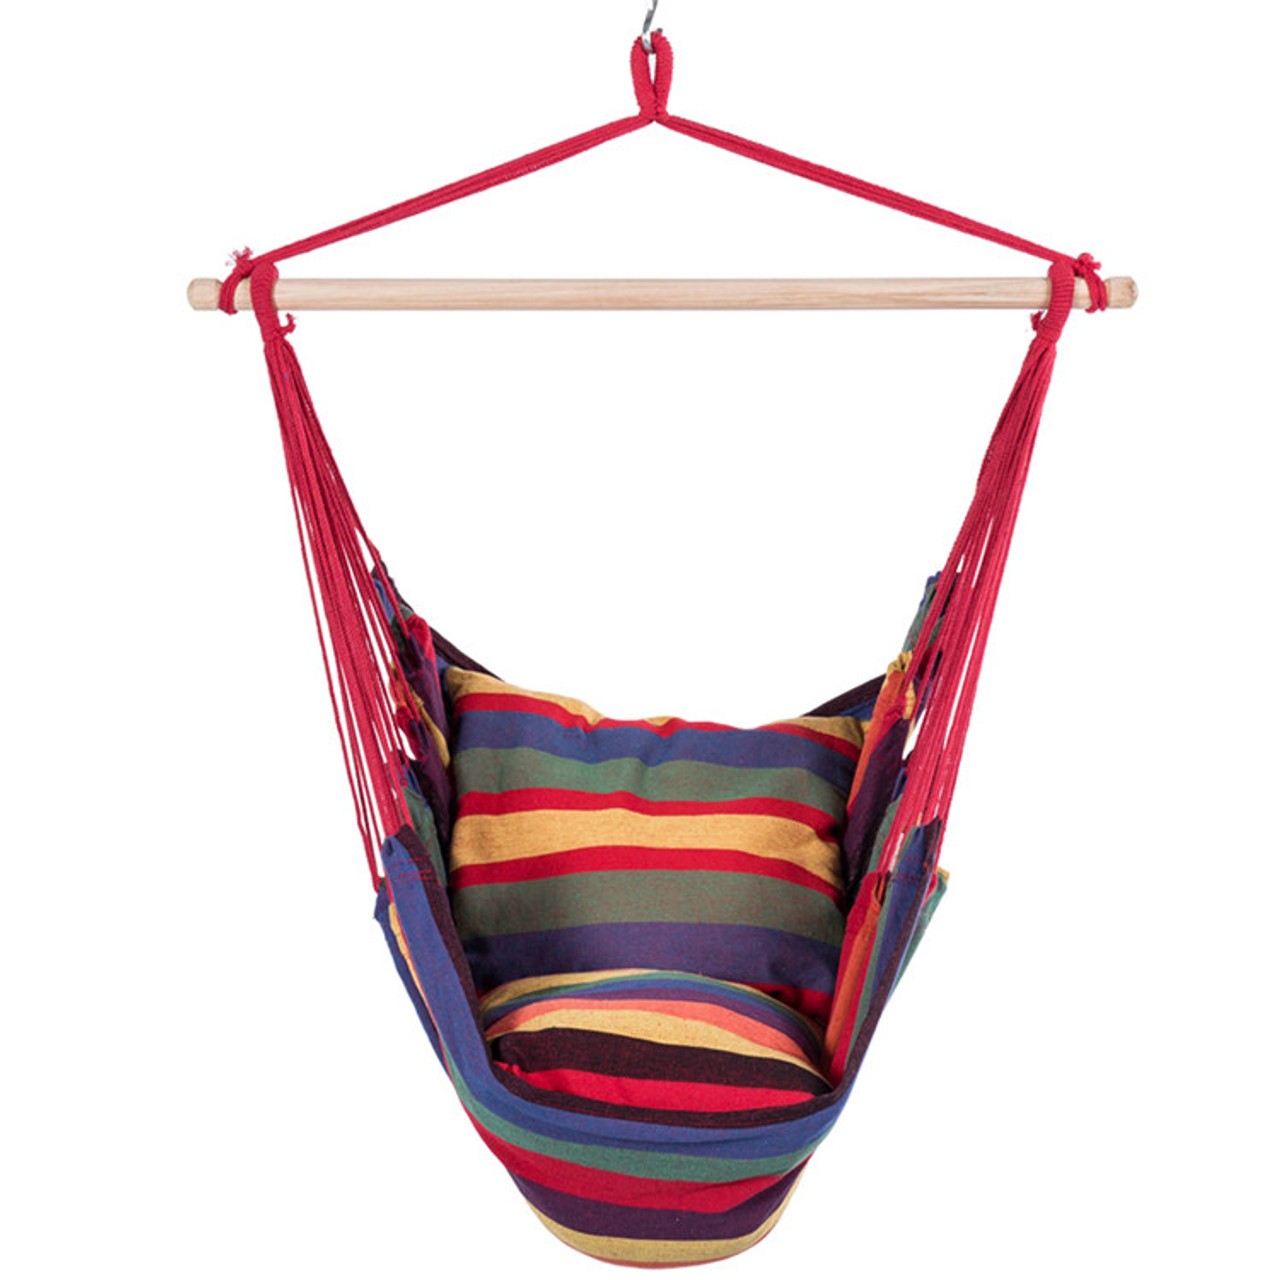 lazy daze hammocks hanging rope hammock chair swing seat with 2 seat cushions weight capacity canvas hanging hammock swing chair seat with wood spreader bar and      rh   sundaleoutdoor